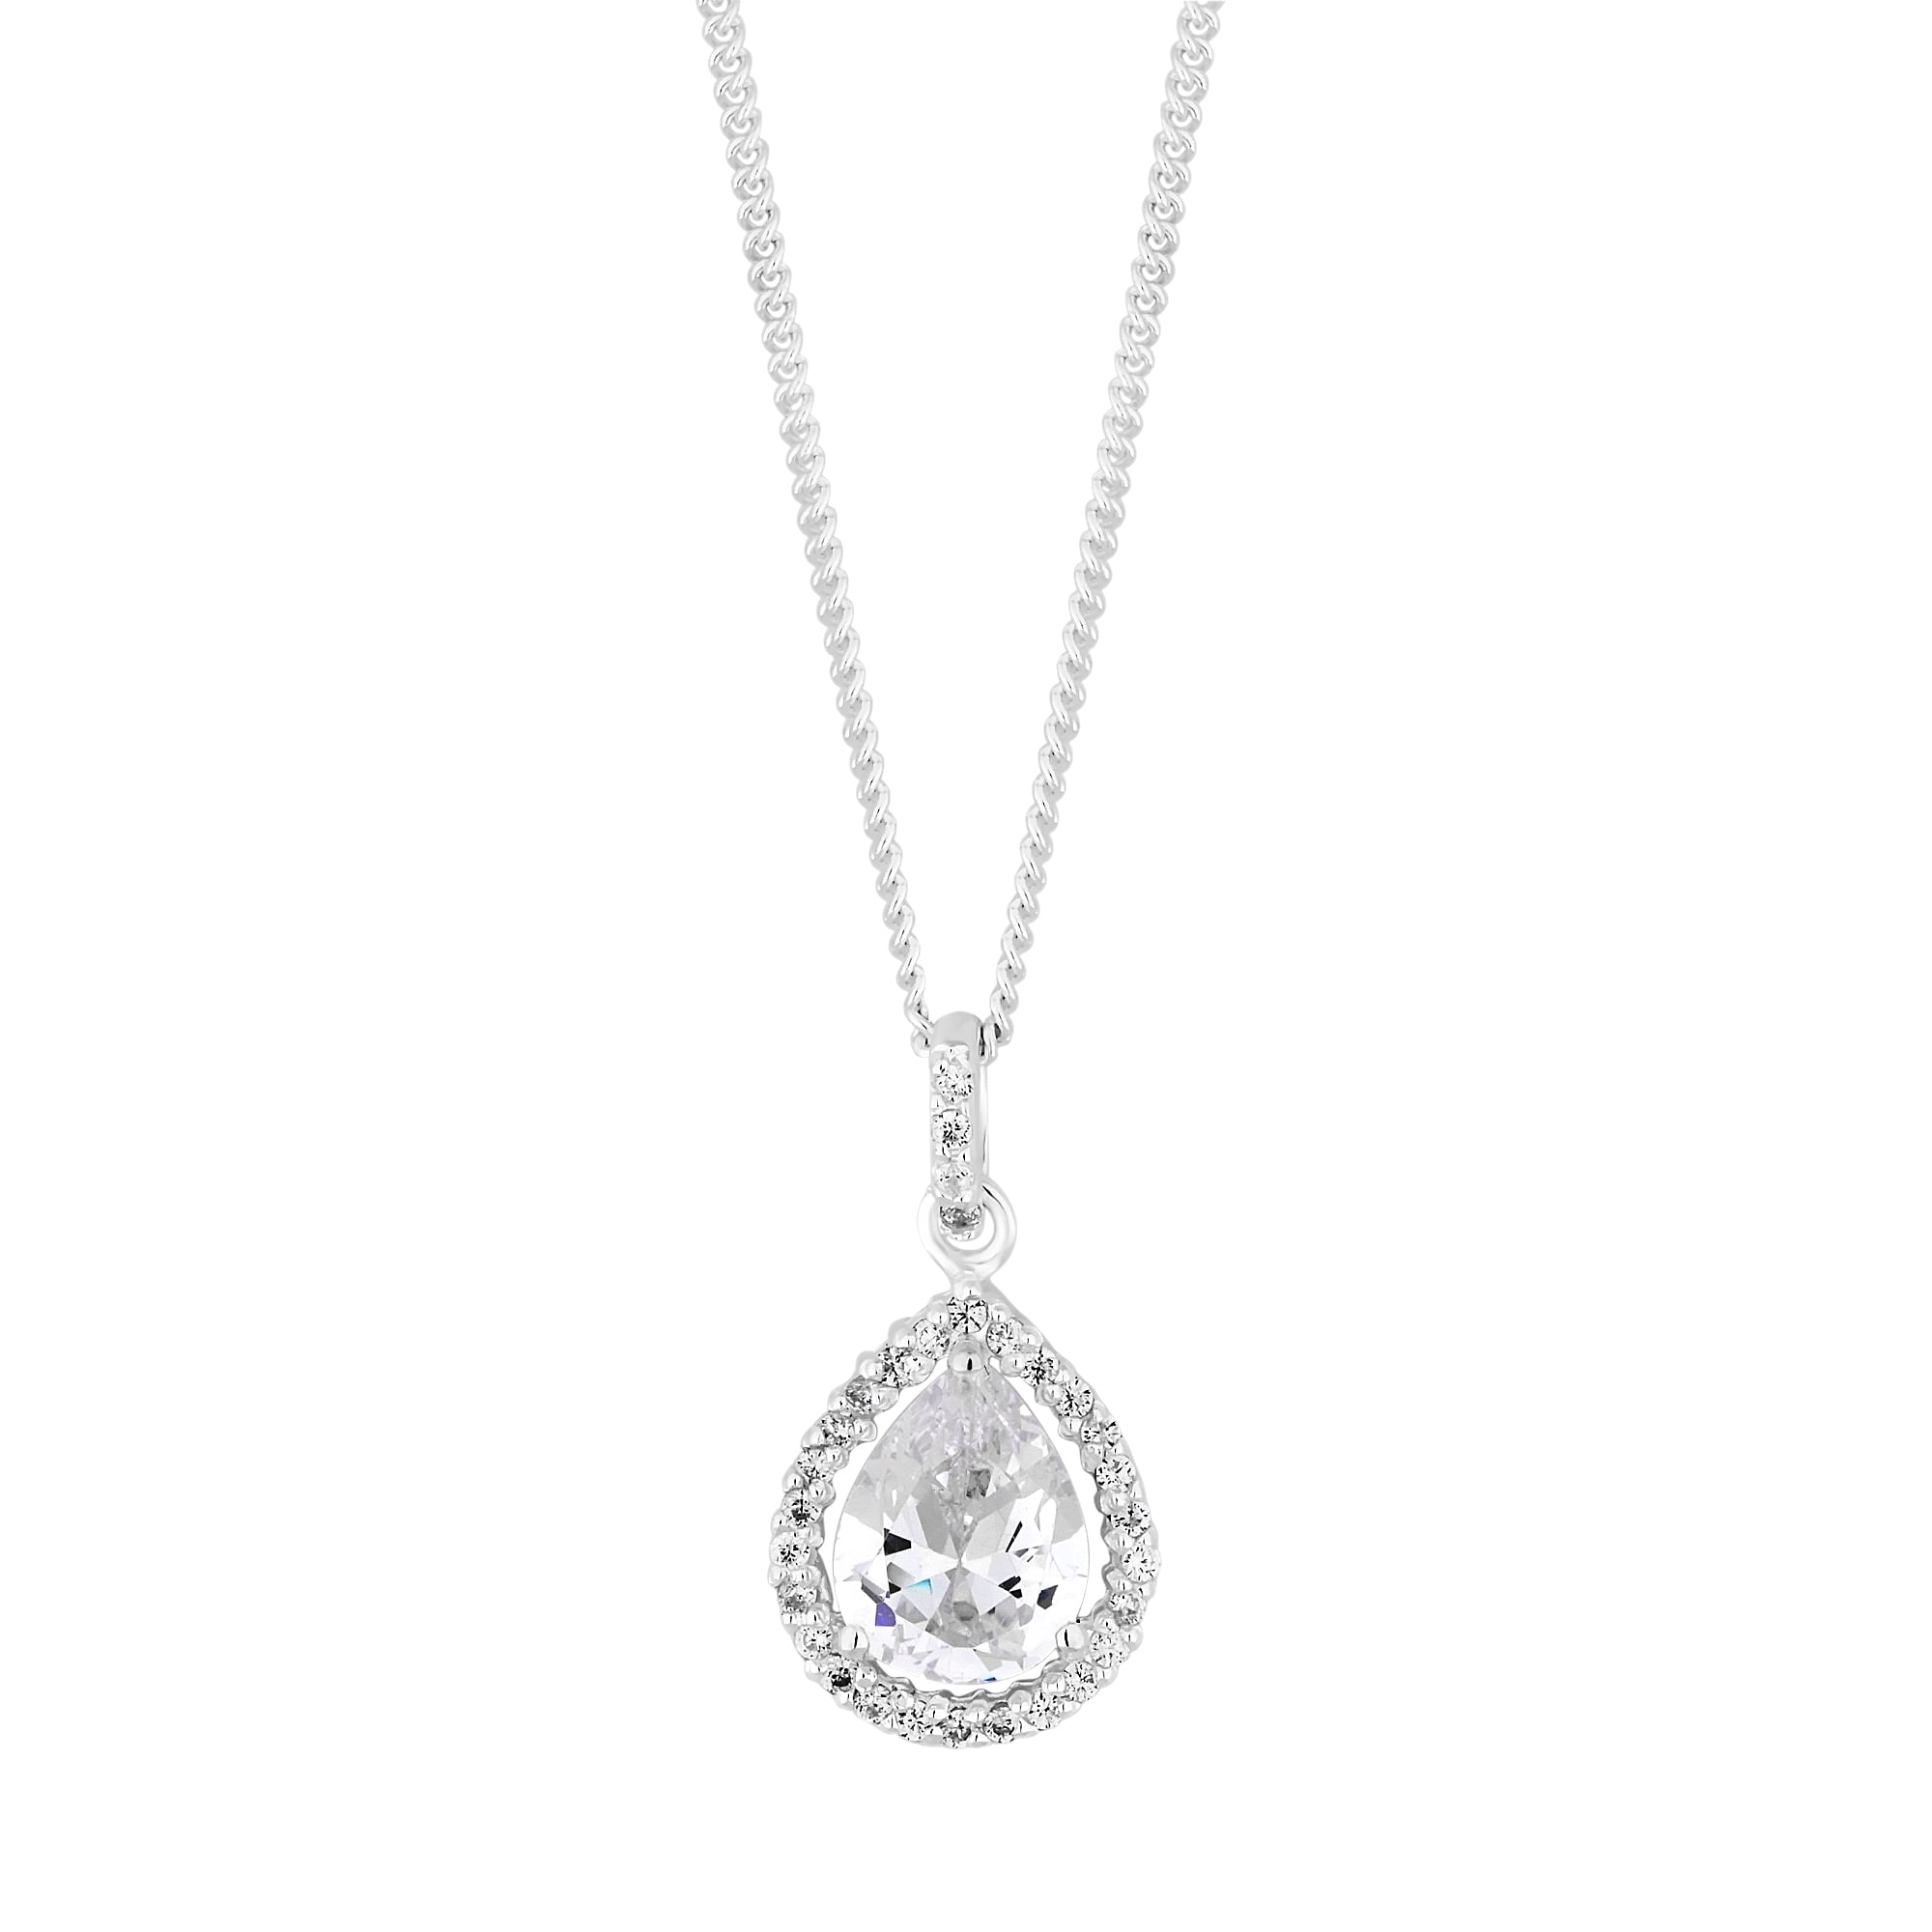 Simply silver sterling silver cubic zirconia pear shaped halo sterling silver cubic zirconia pear shaped halo pendant necklace aloadofball Image collections